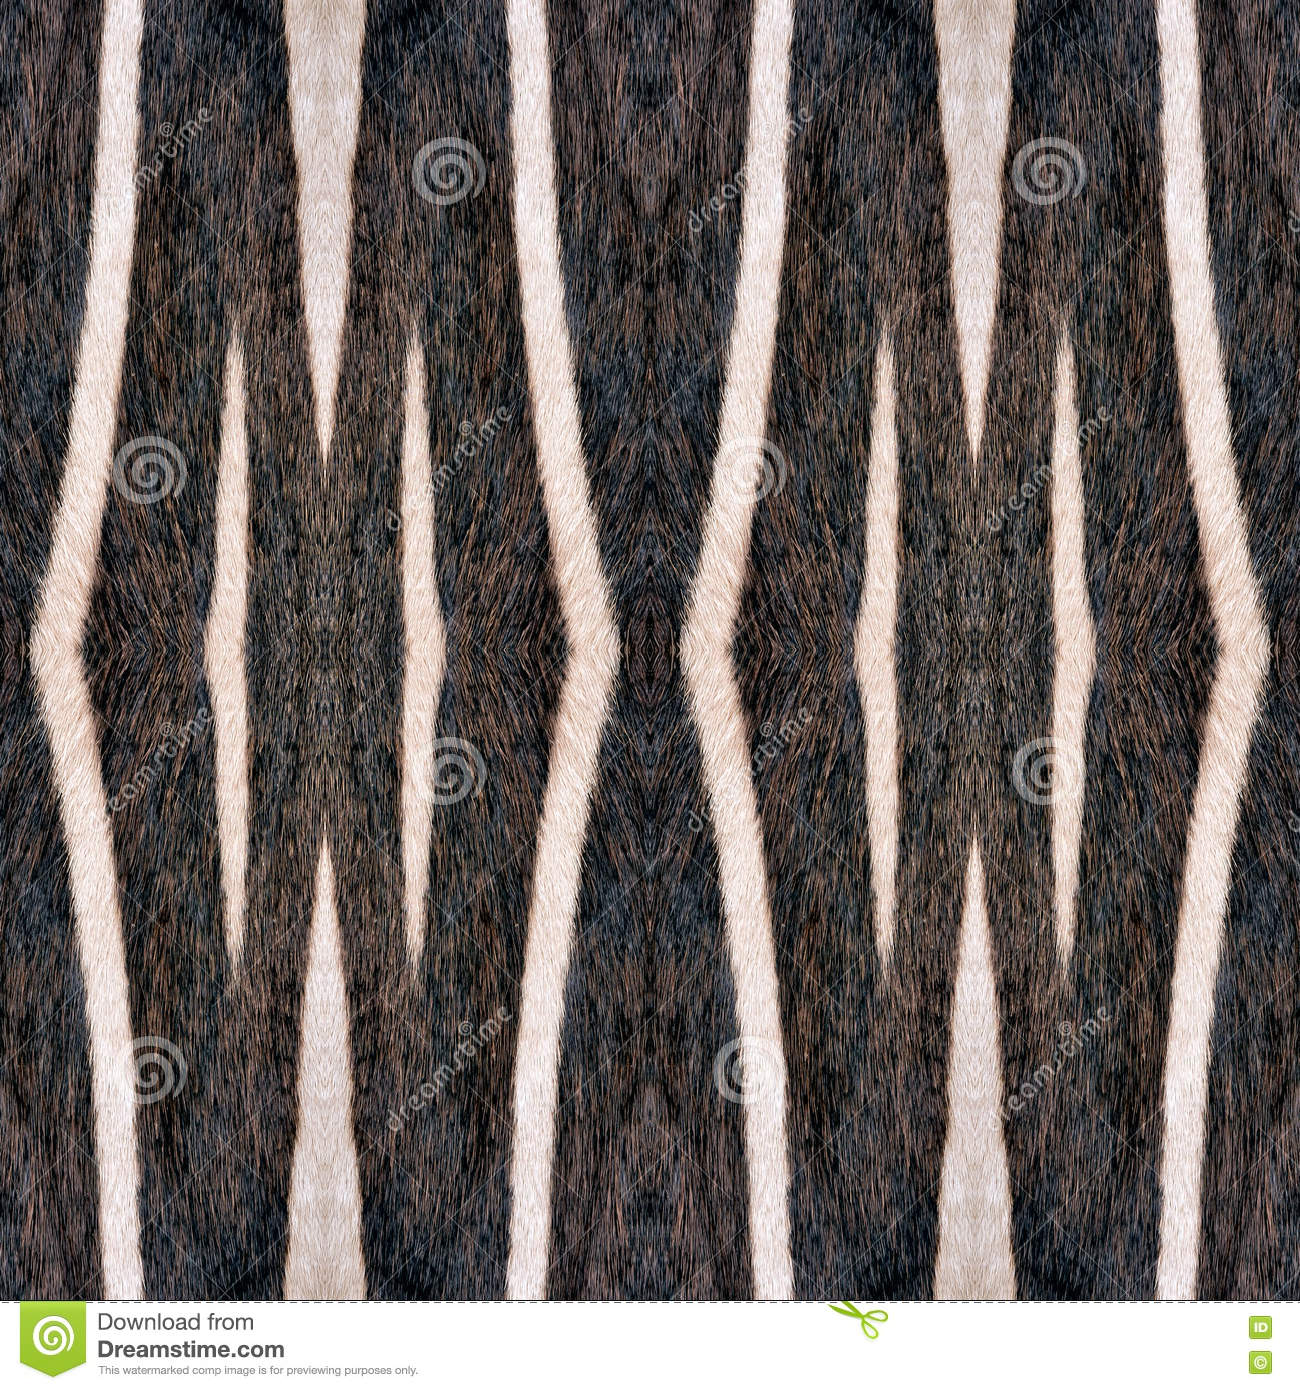 OrAbstract, Seamless Wallpaper Tiles, Zebra Stripes